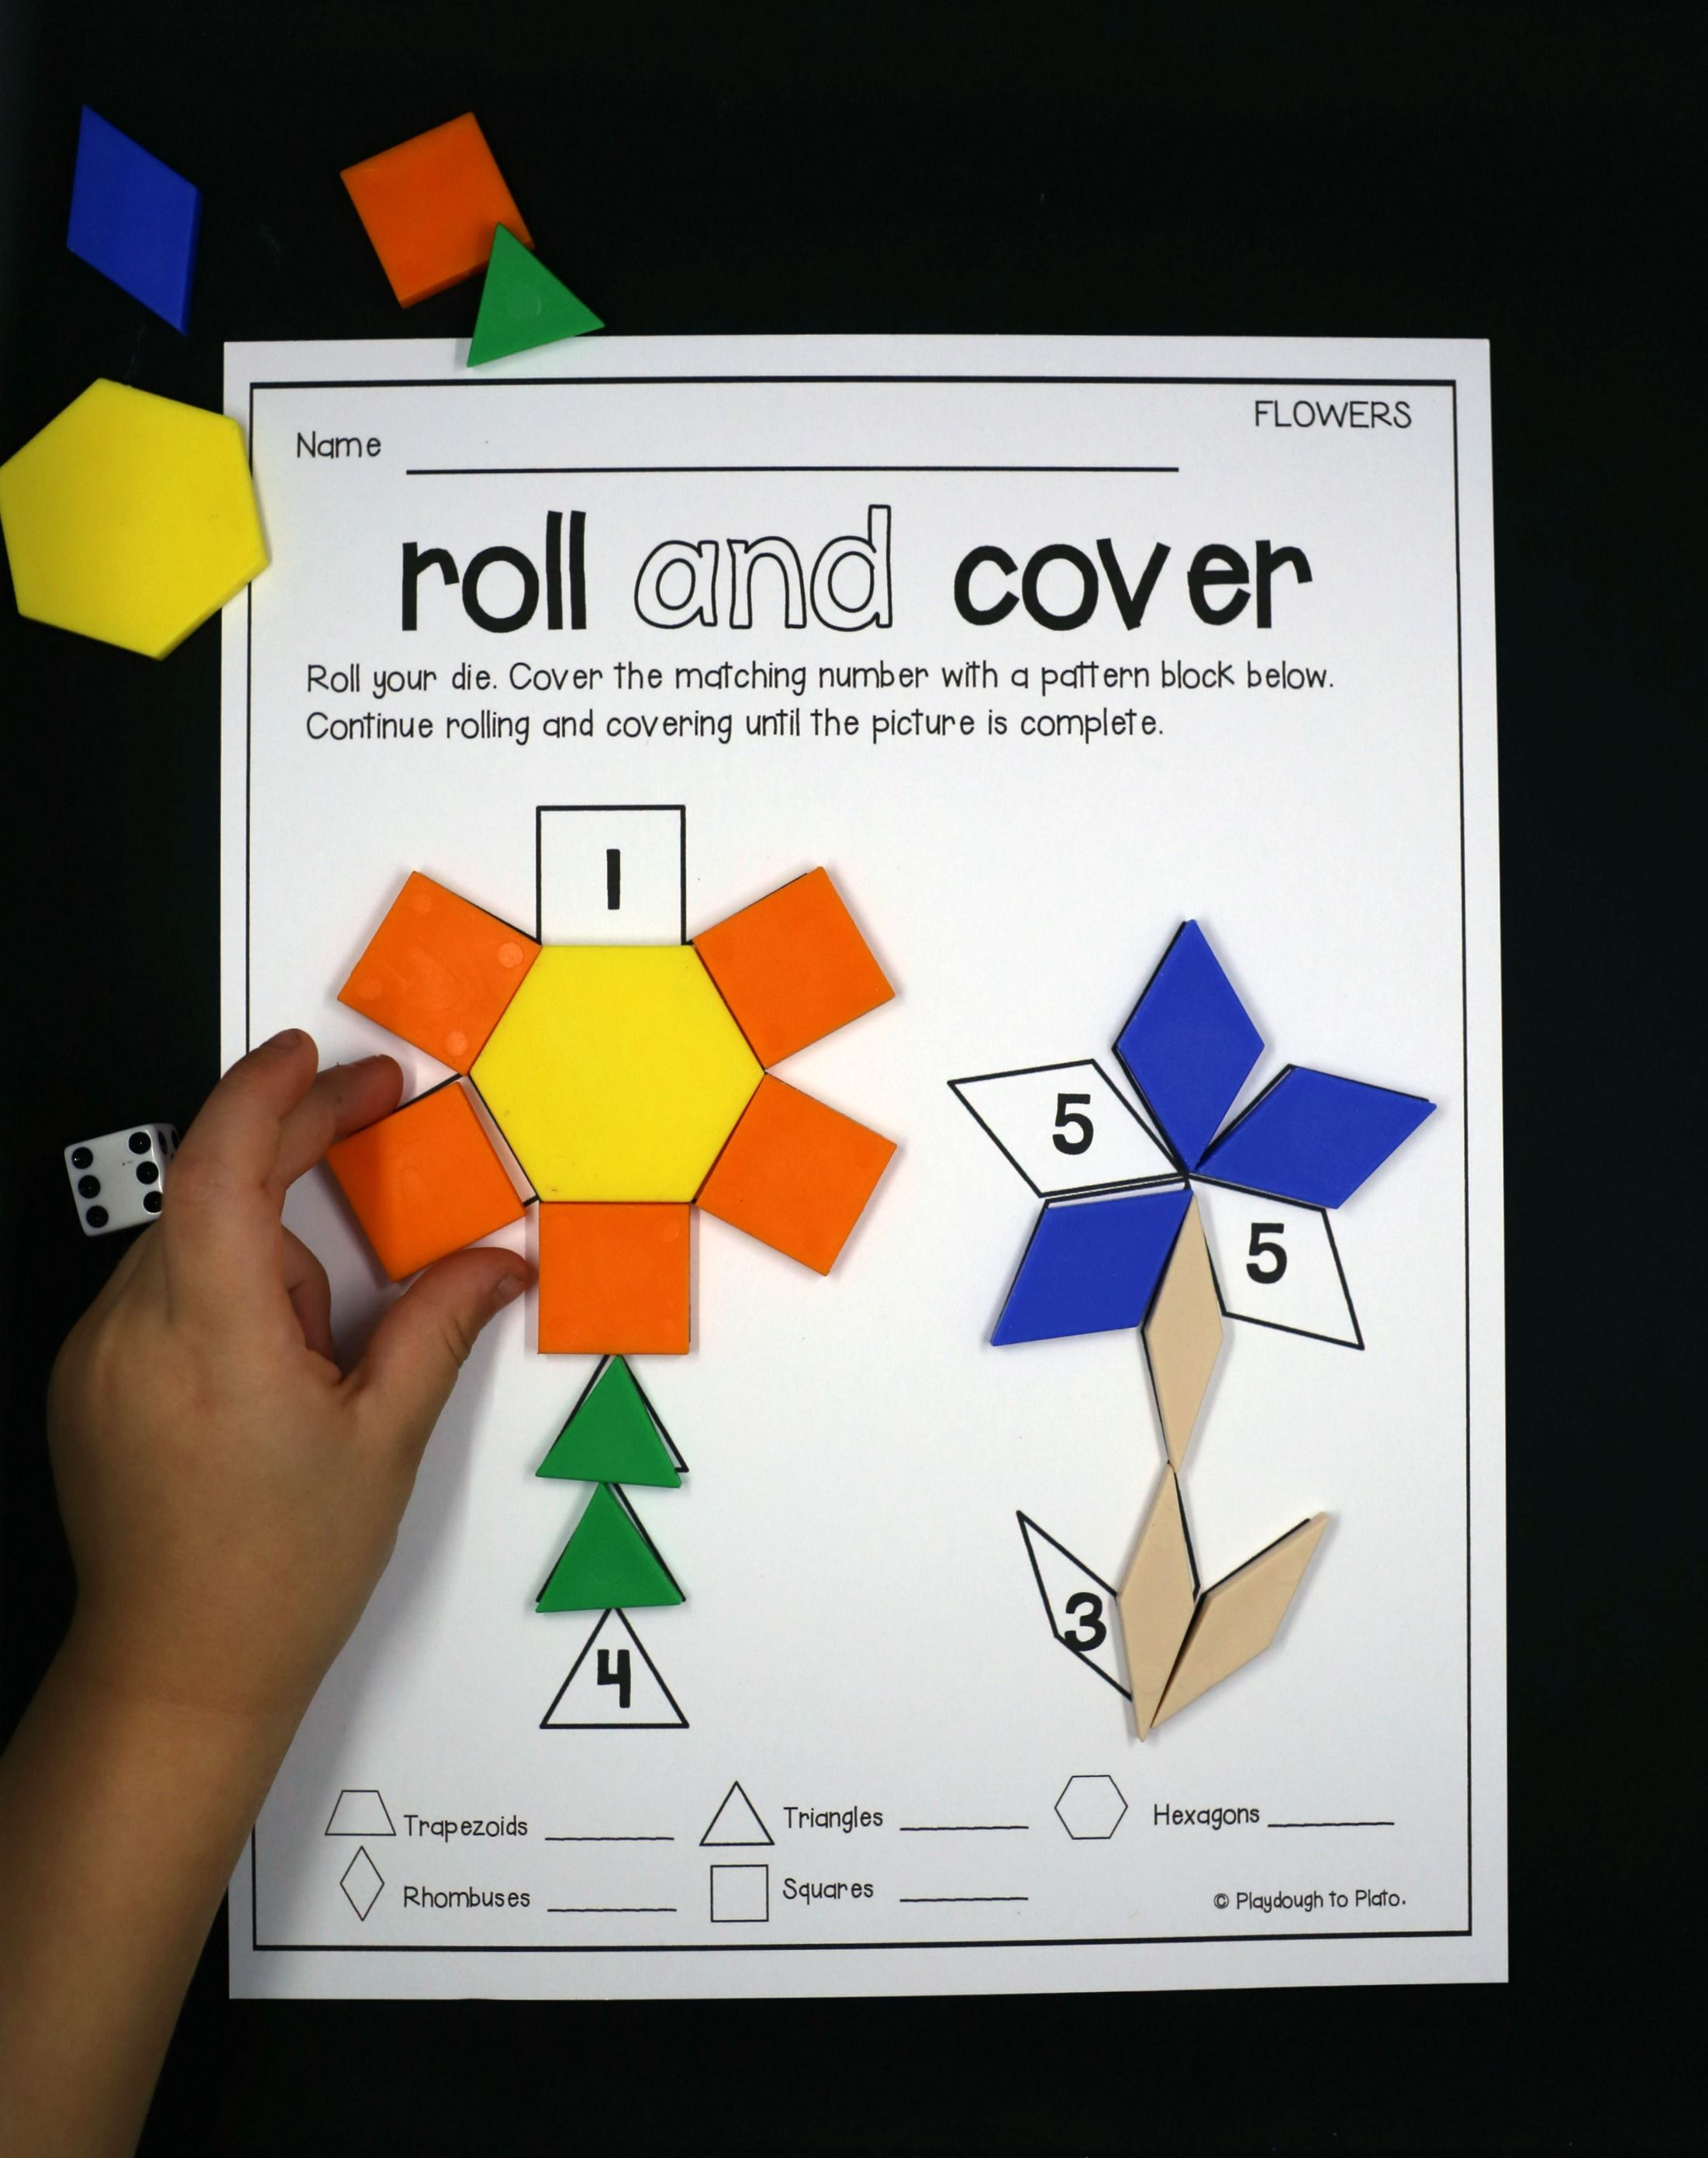 roll and cover pattern block mats  2d shapes activities